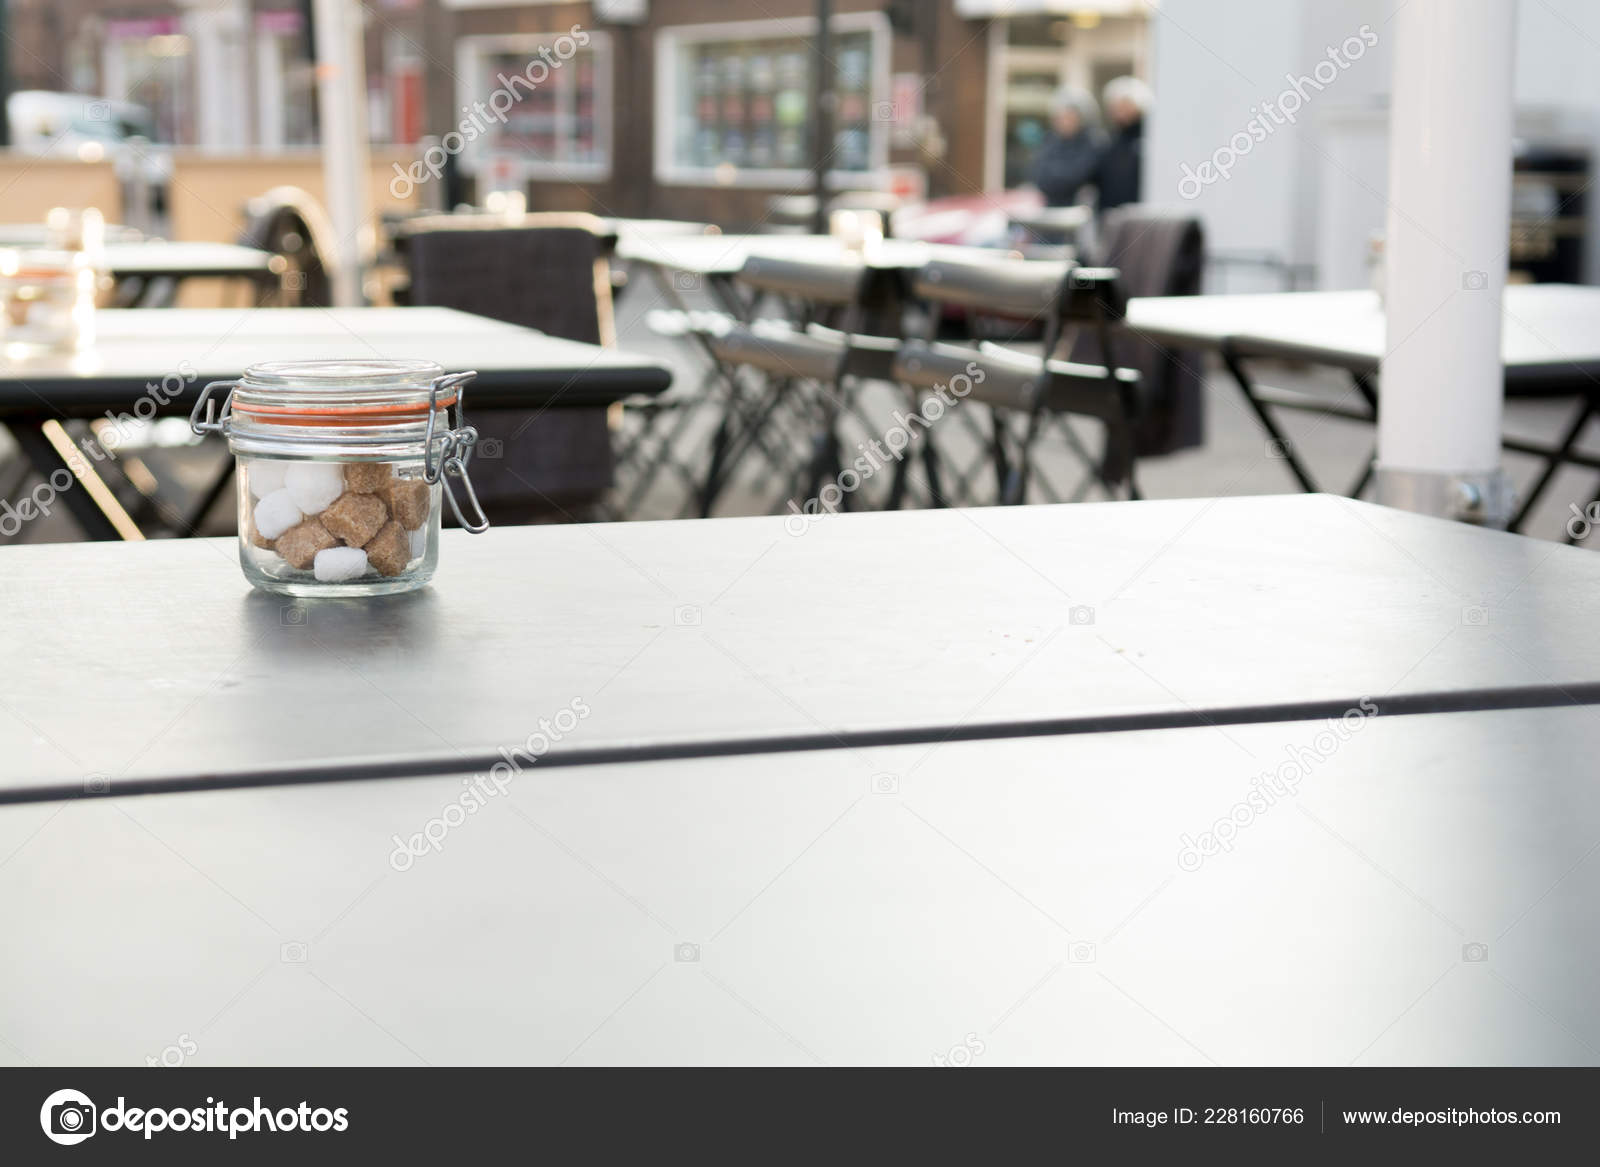 Outdoor Area Coffee Shop Restaurant Tables Copy Space Stock Photo C Tommoh21 228160766